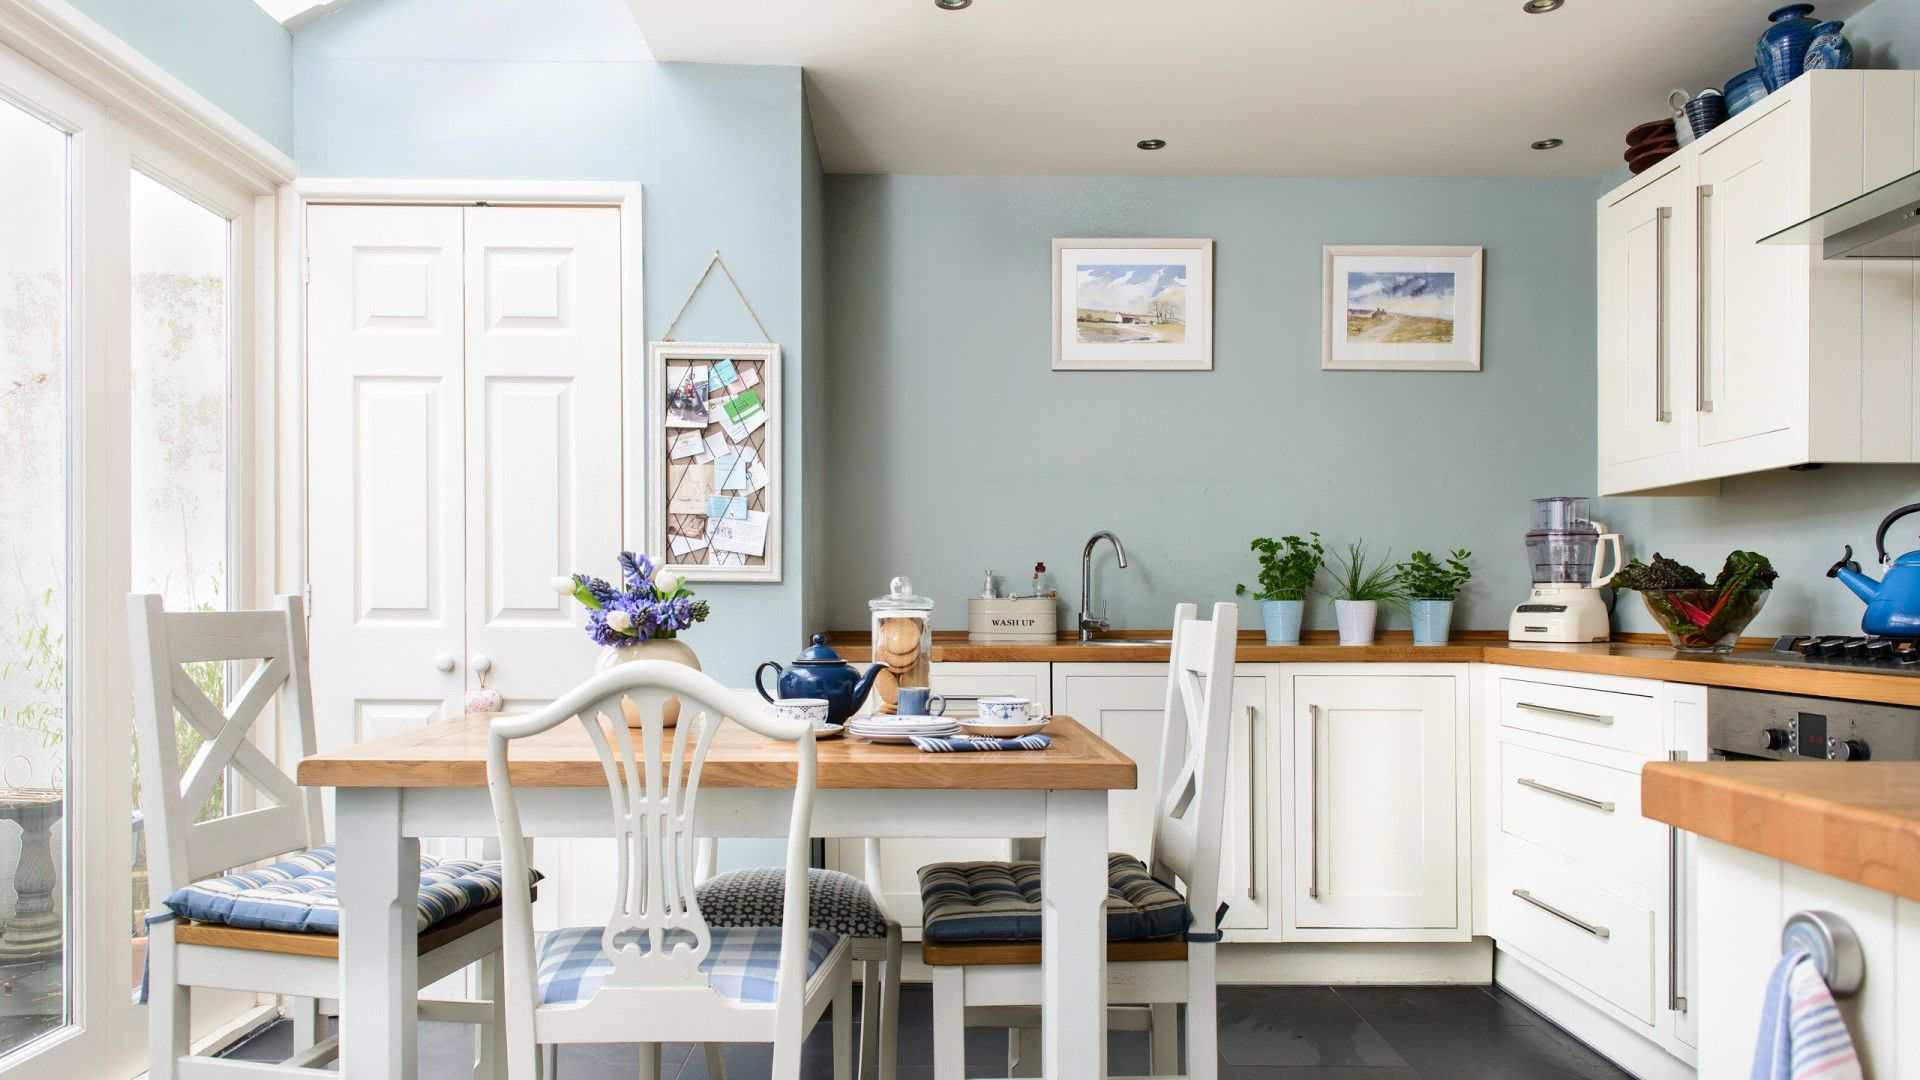 In this large family kitchen, the white units and wooden worktops ...